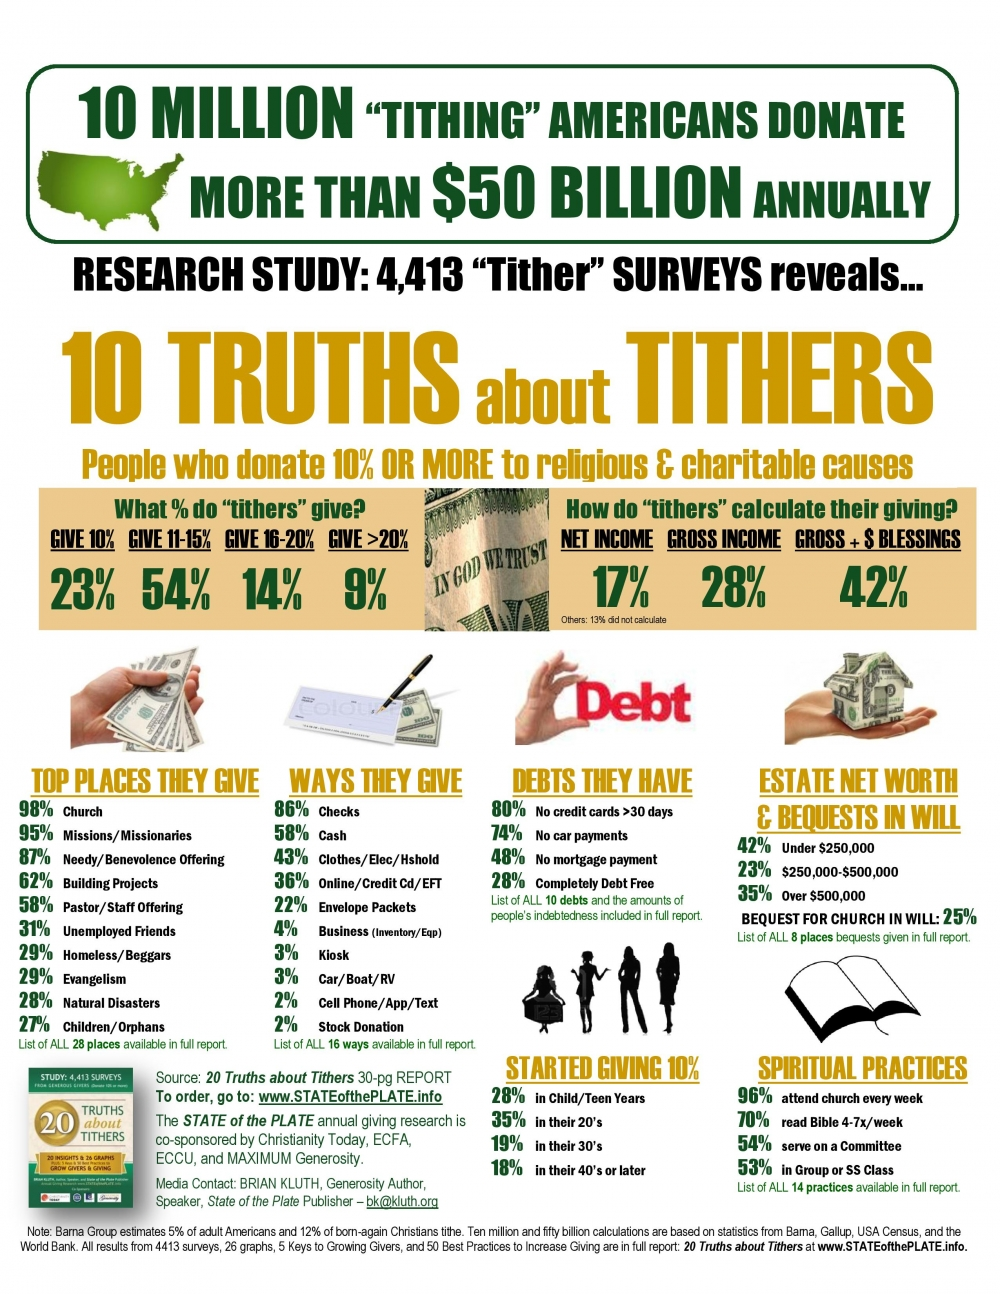 20 Truths about Tithers - Infographic. Credit: Brian Kluth